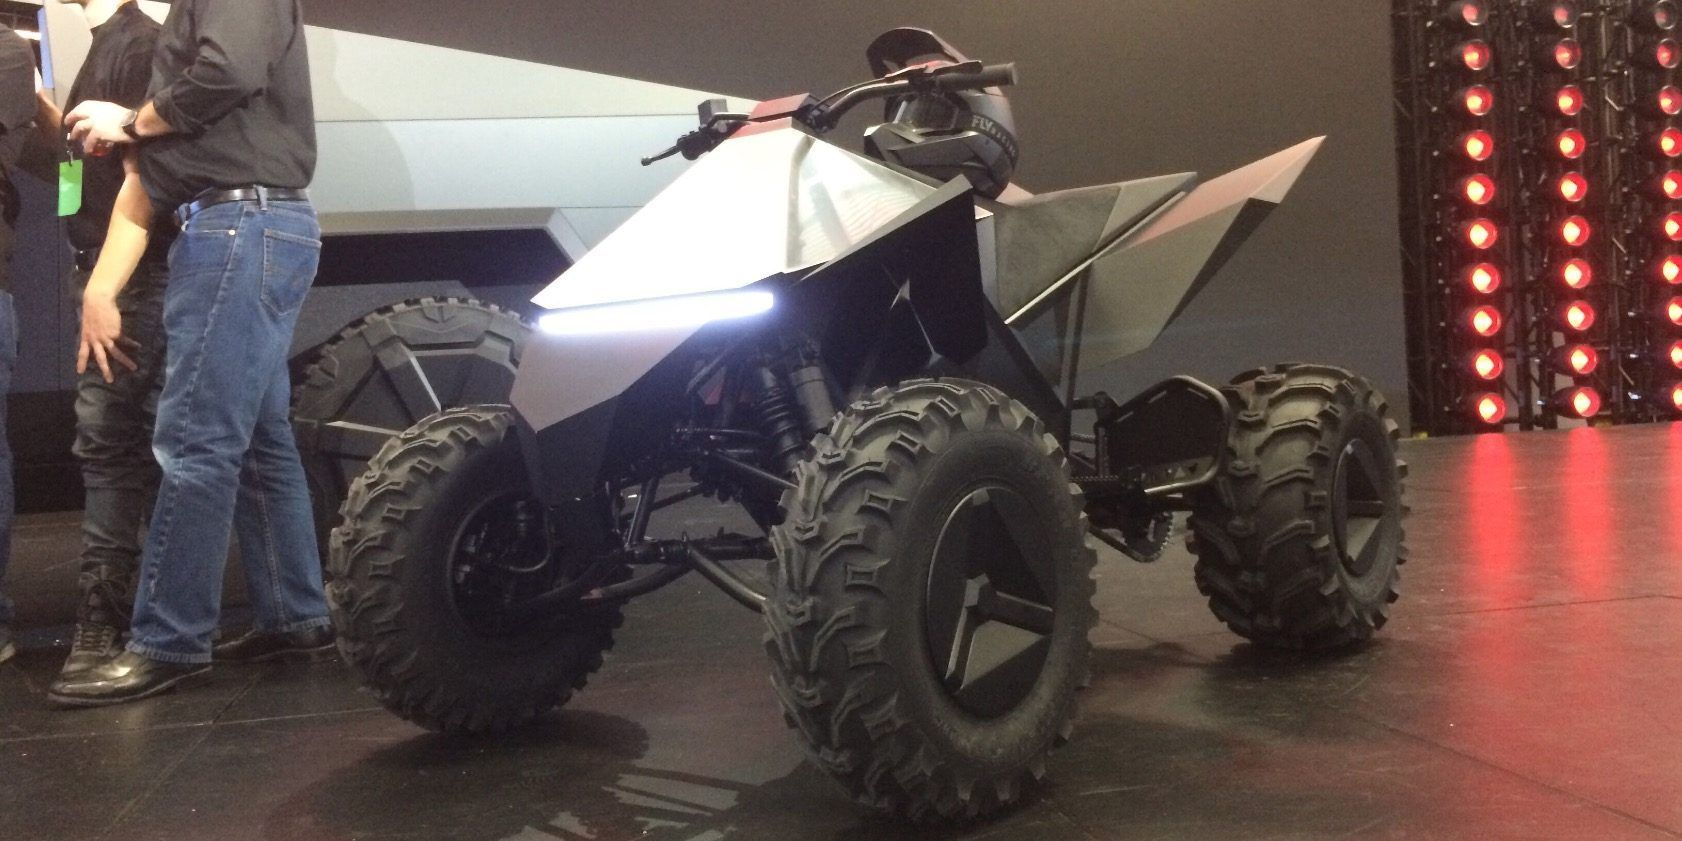 Tesla To Launch Cyberquad Electric Atv In Late 2021 Hints At Possible Dirt Bike Hot Rods Cars Muscle Tesla Electric Cars